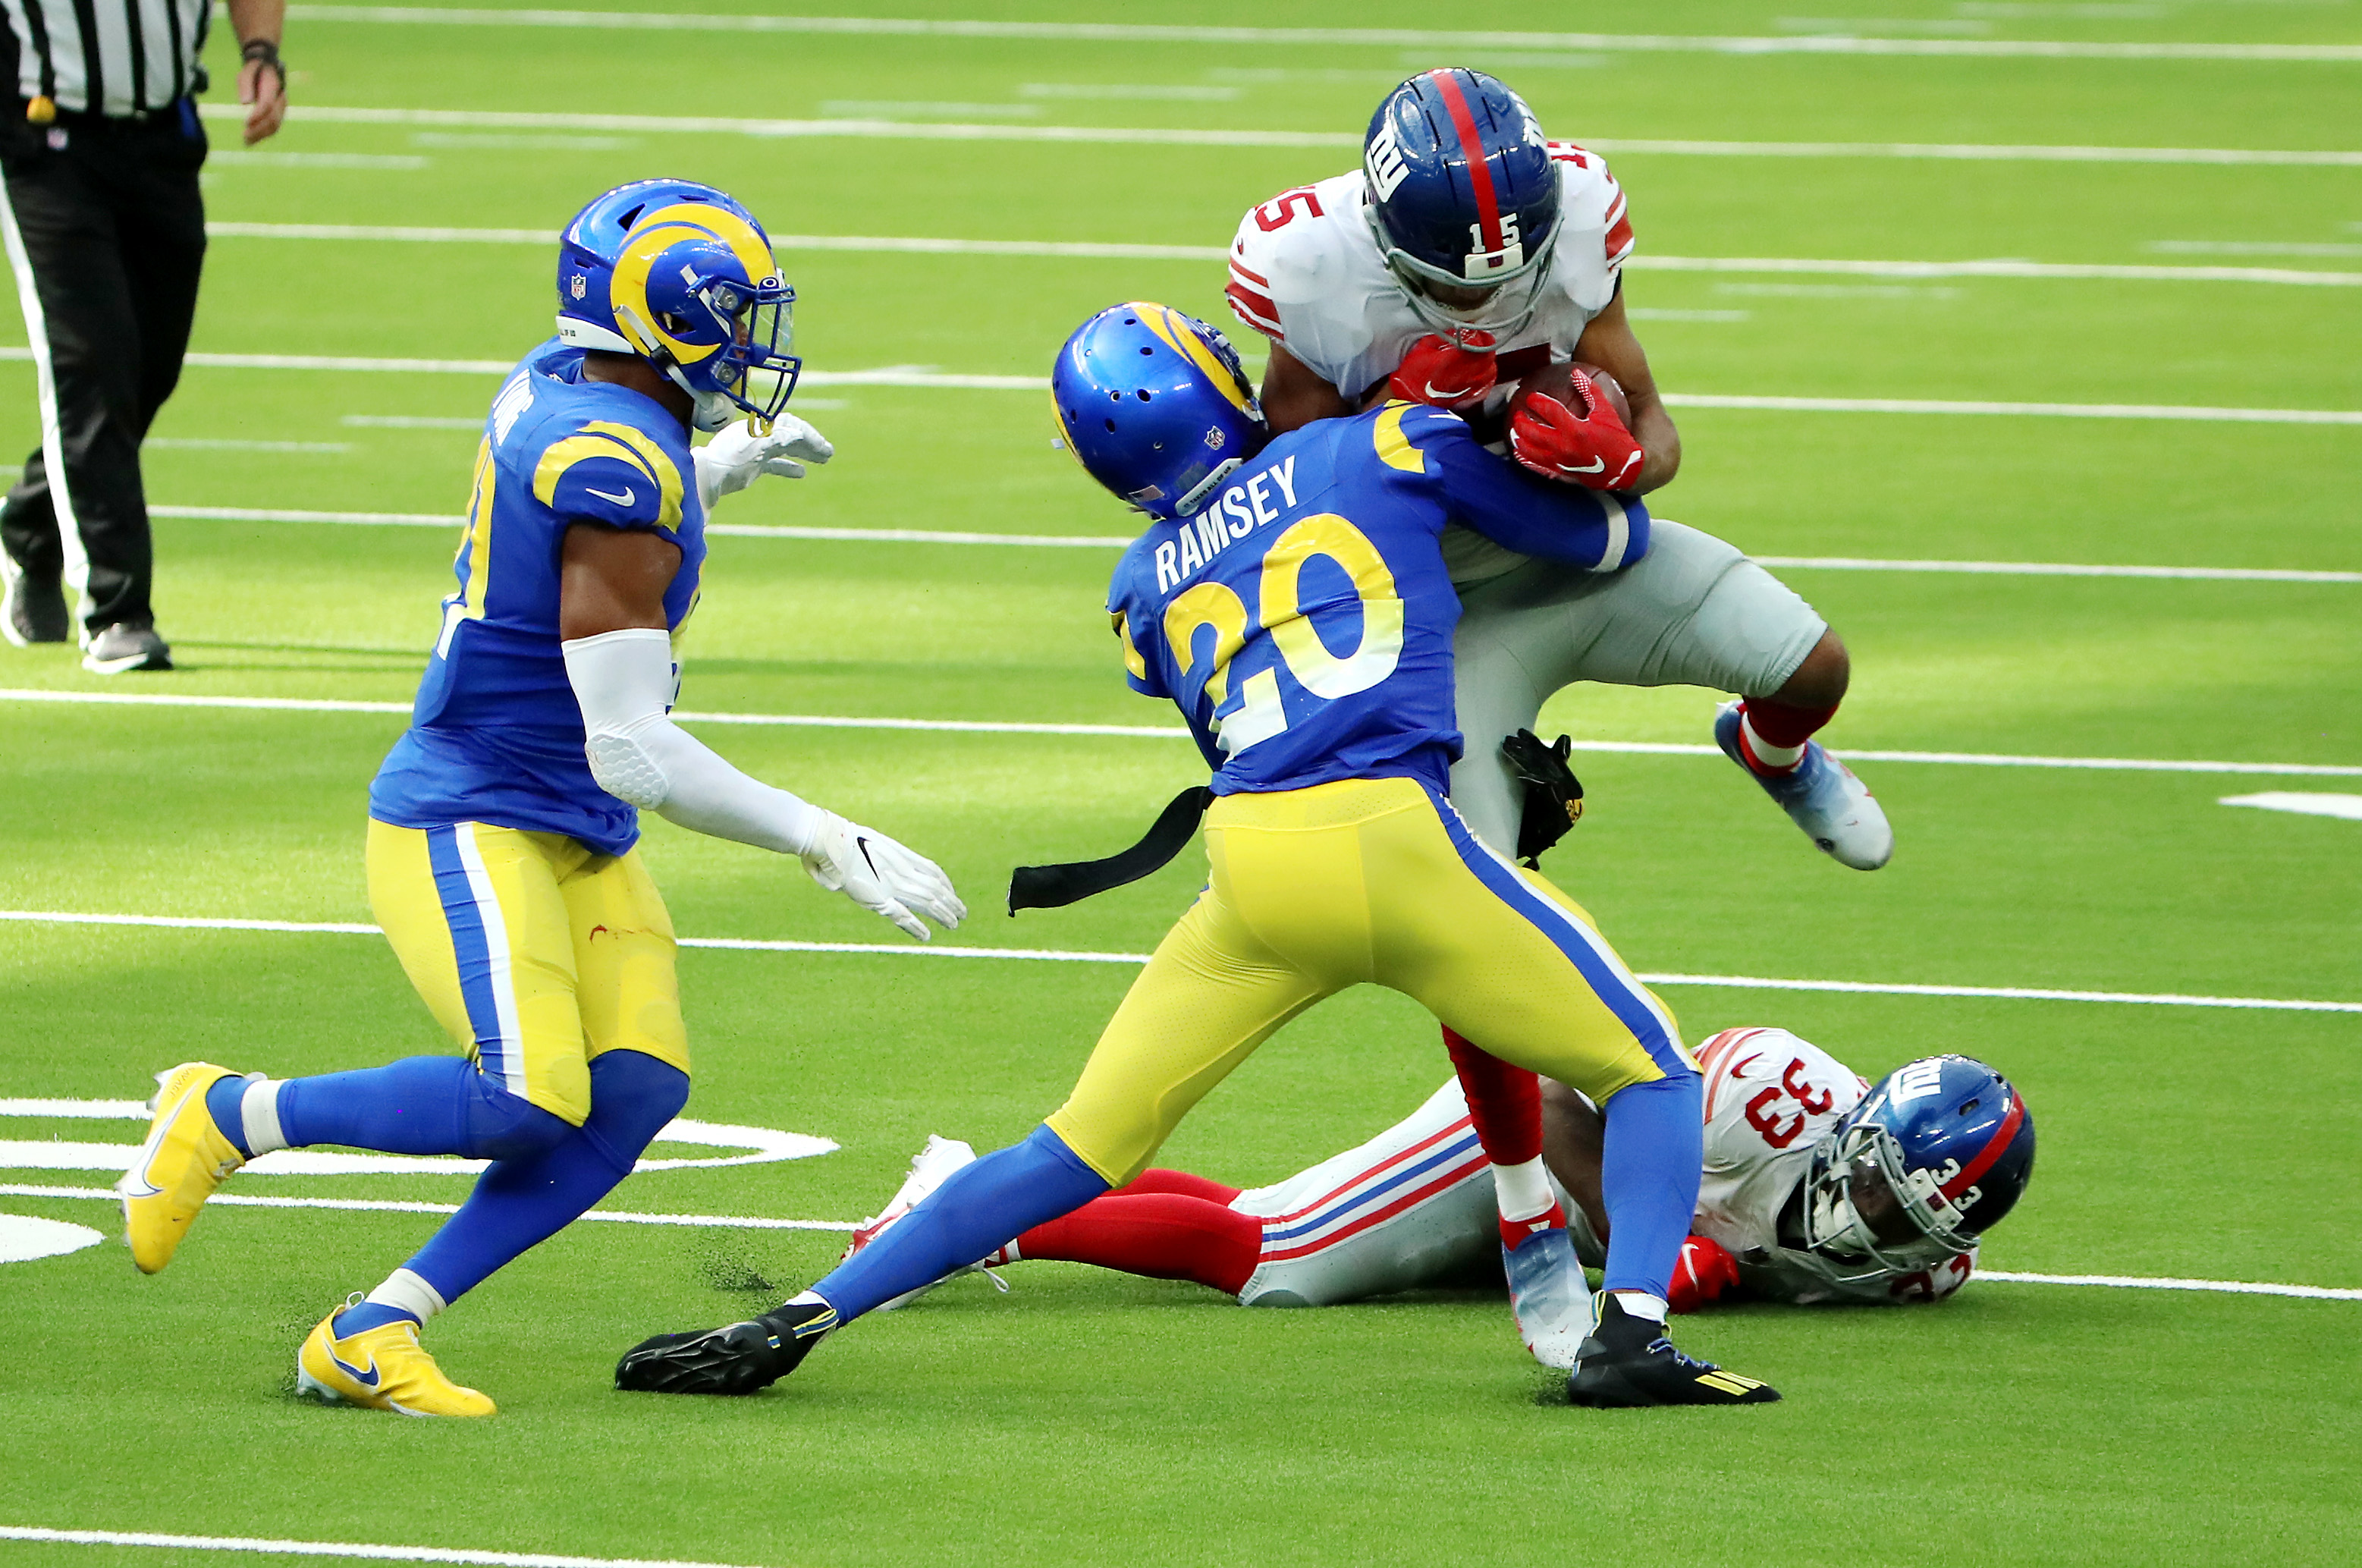 Ramsey, Tate throw punches at midfield after game